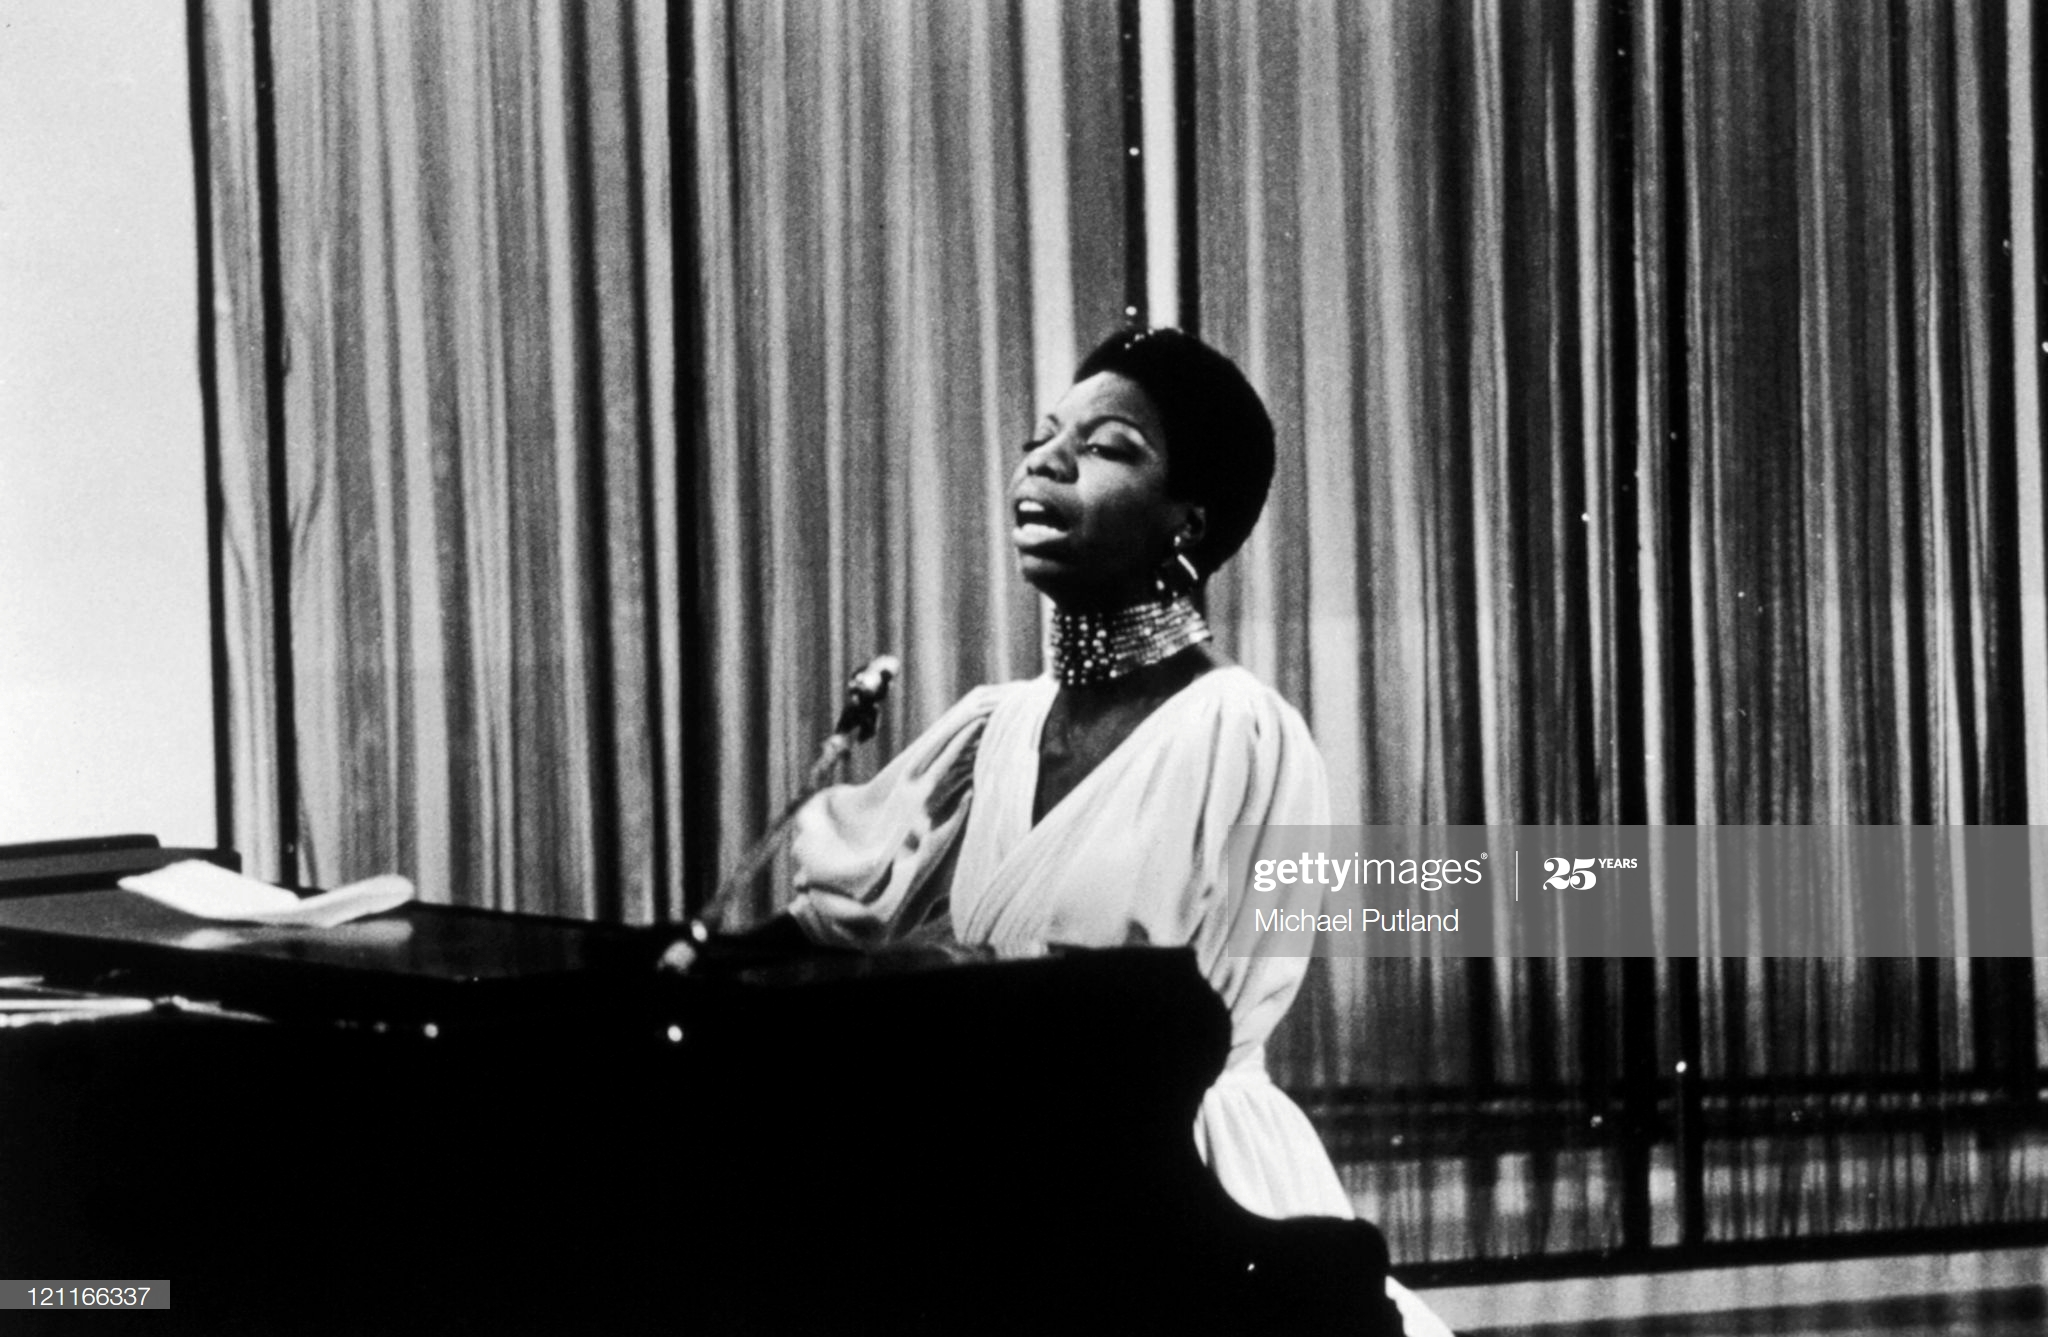 LONDON - 8th DECEMBER: Nina Simone appearing on the David Frost TV show, London, 1968. (Photo by Michael Putland/Getty Images)